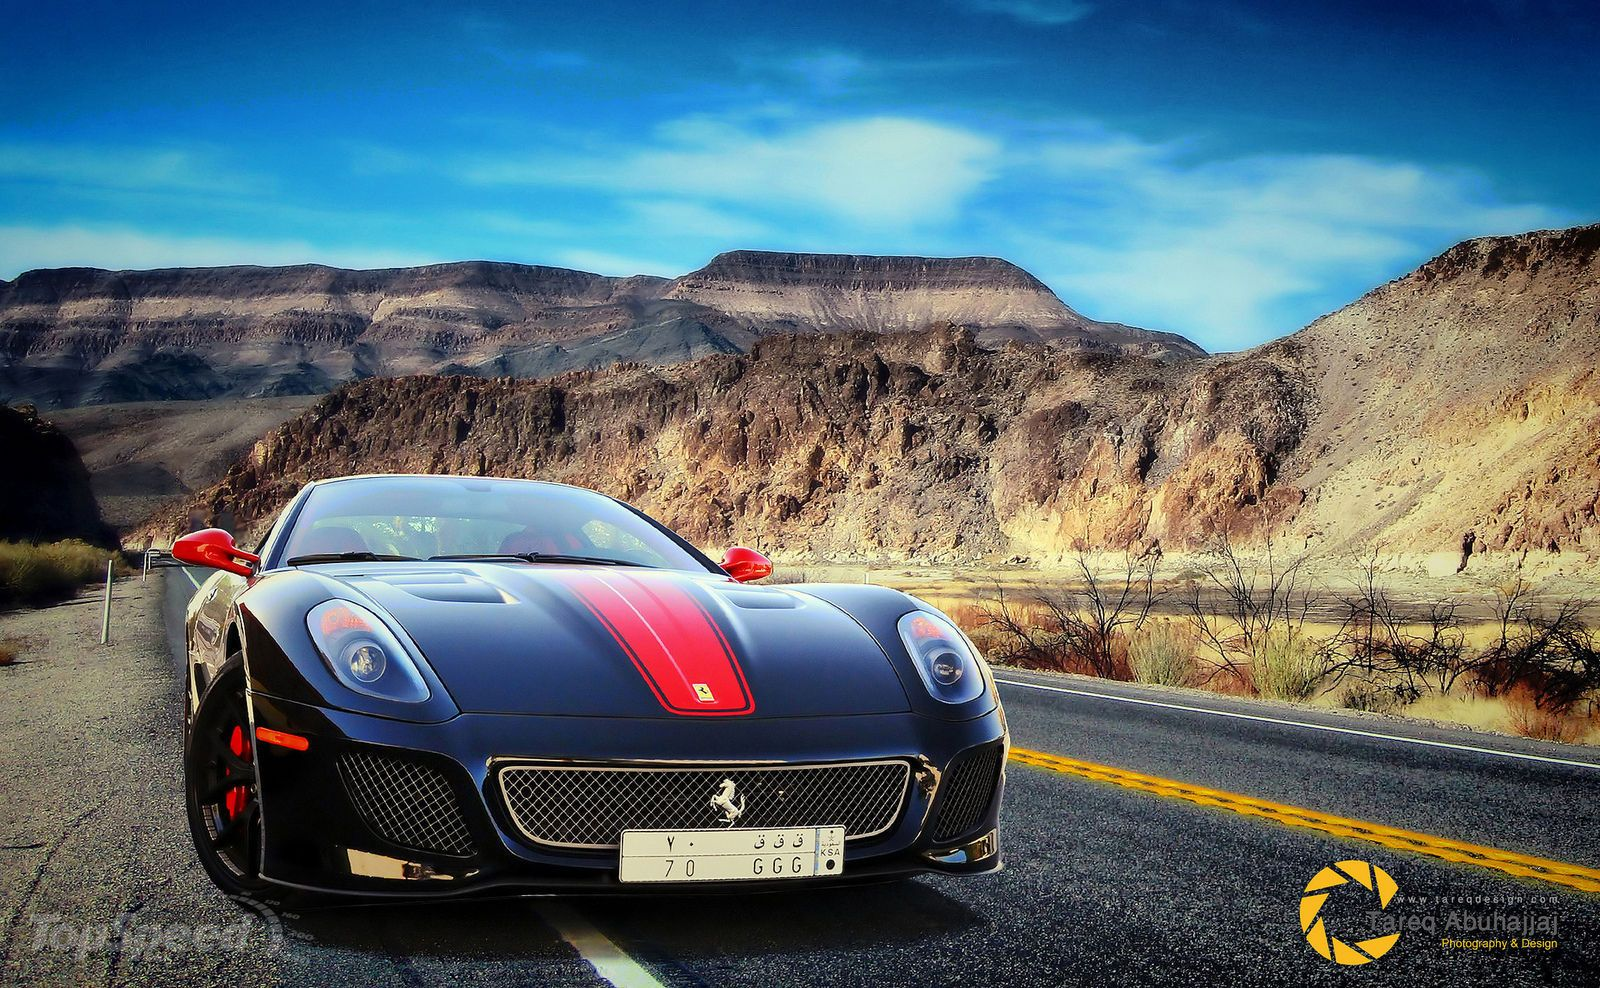 Ferrari 599 picture from our photo of the week stunning ferrari 599 gto in saudi arabia news article containing 1 high resolution images car news by top